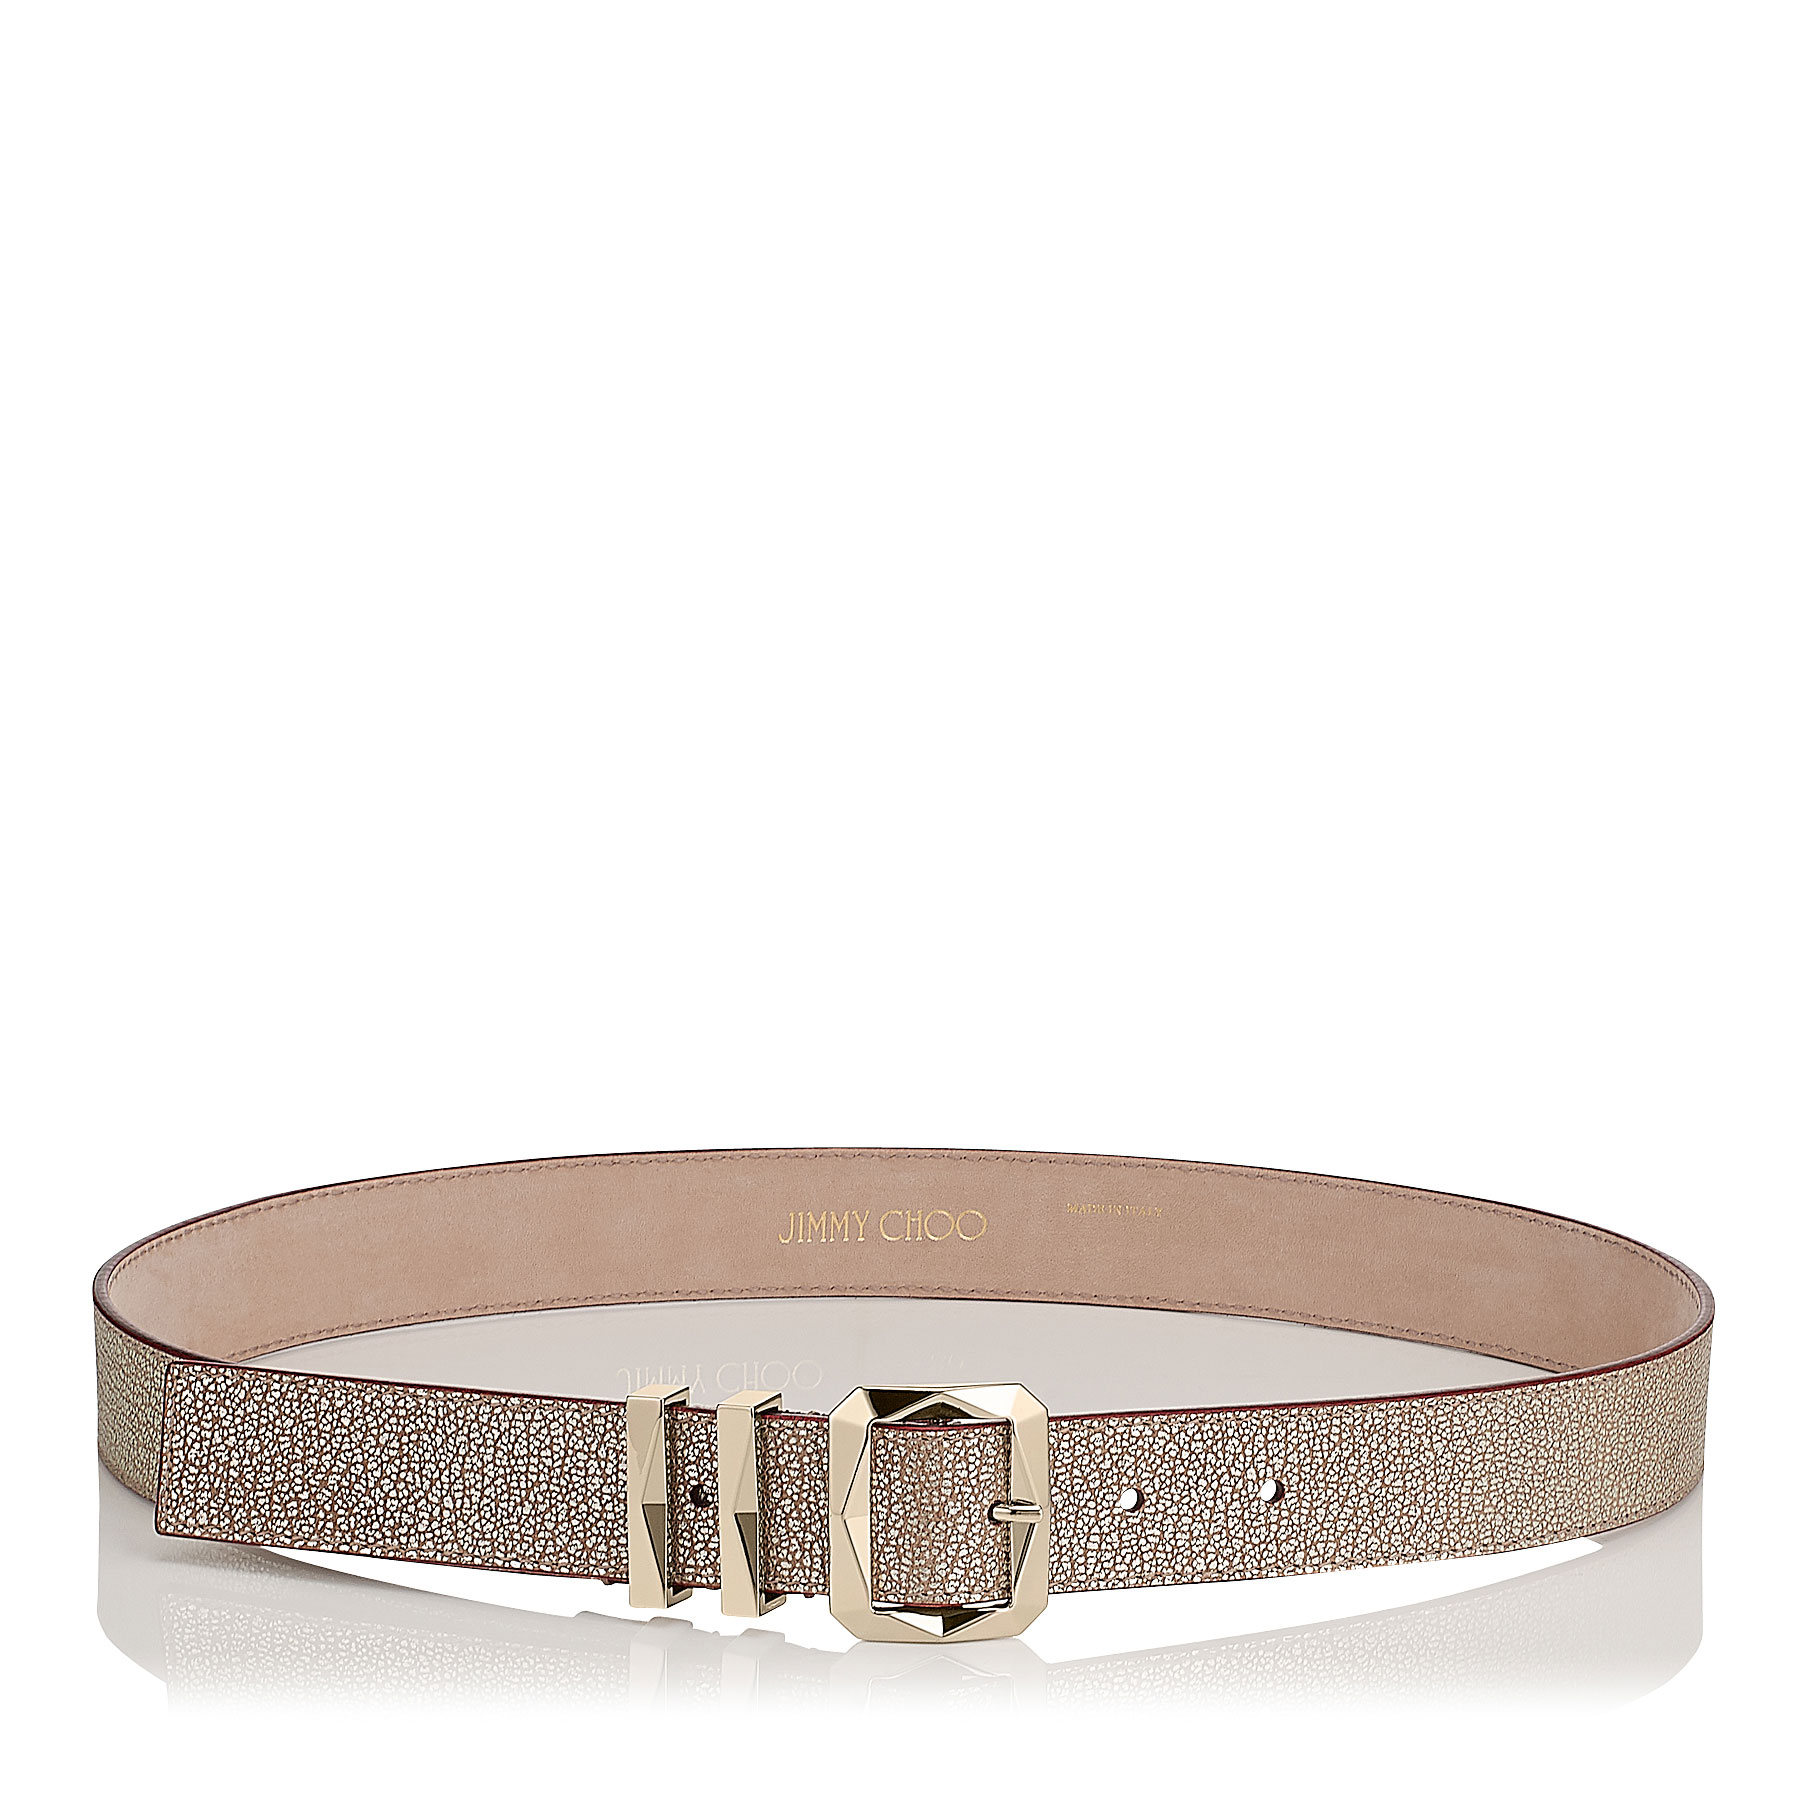 BLITZ Champagne Leather Belt